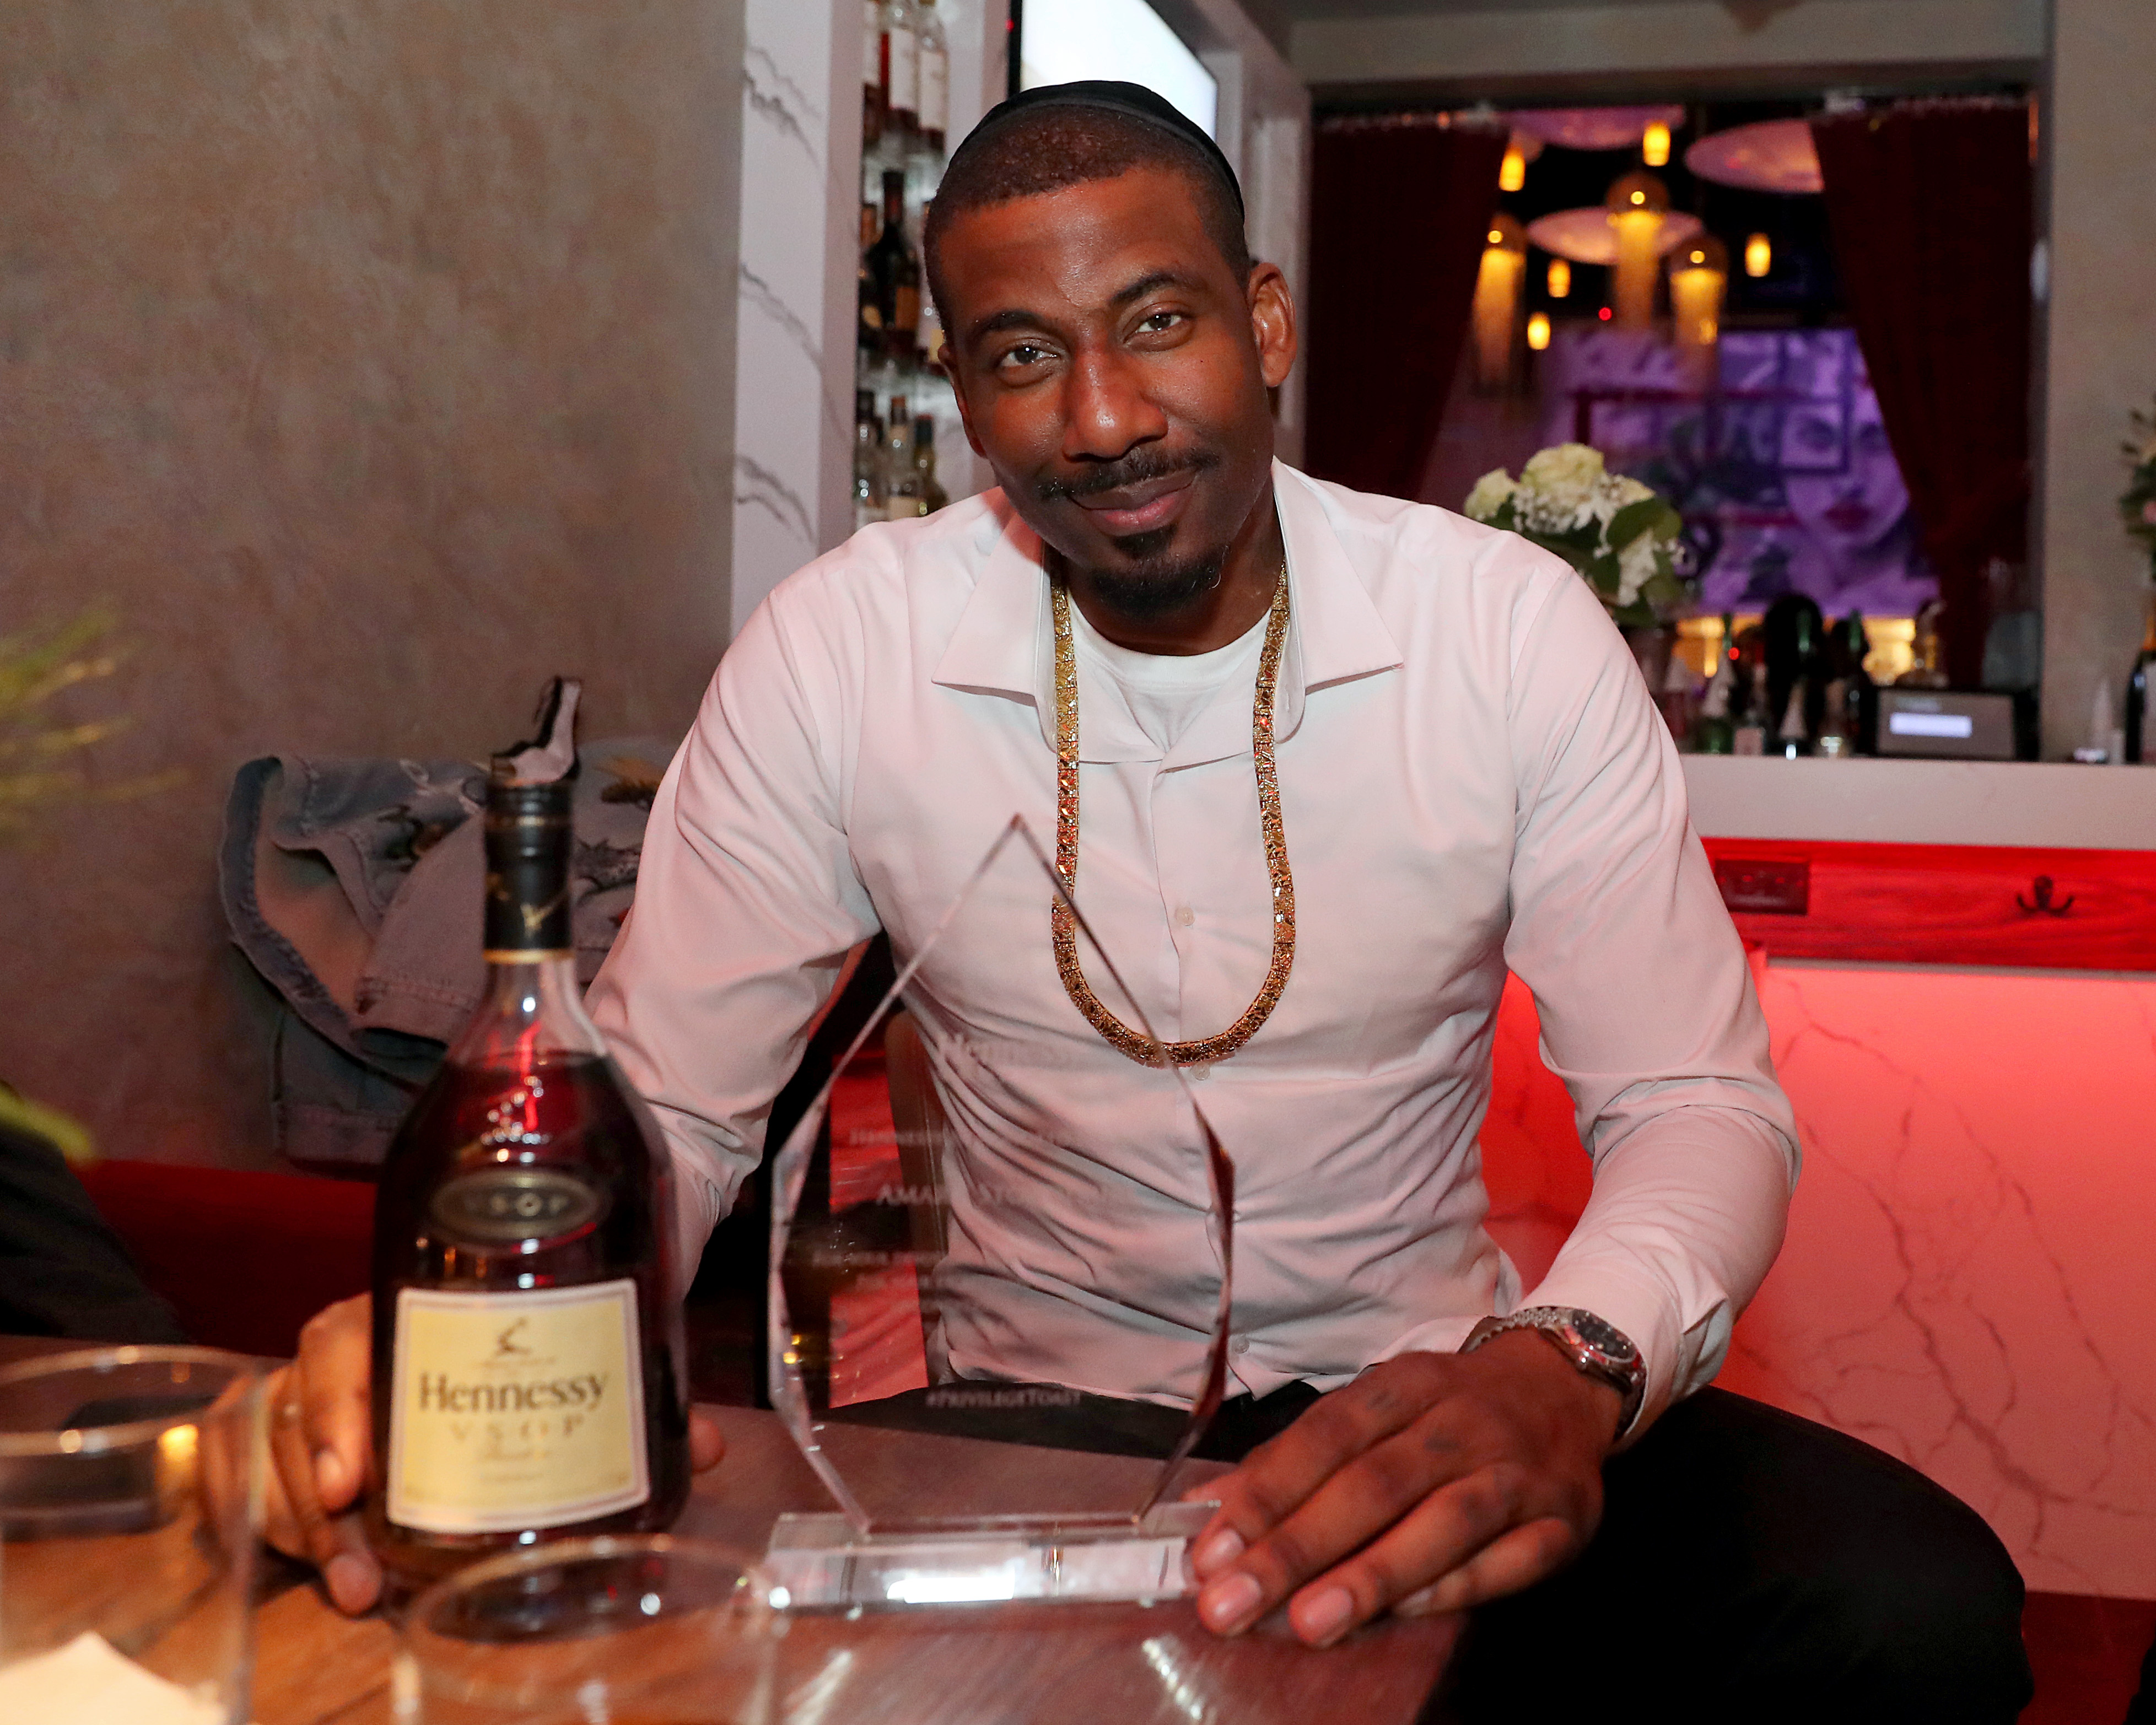 NBA Star Amar'e Stoudemire Just Added $3.5 Million to His Bank Account Thanks to Rapper Rick Ross